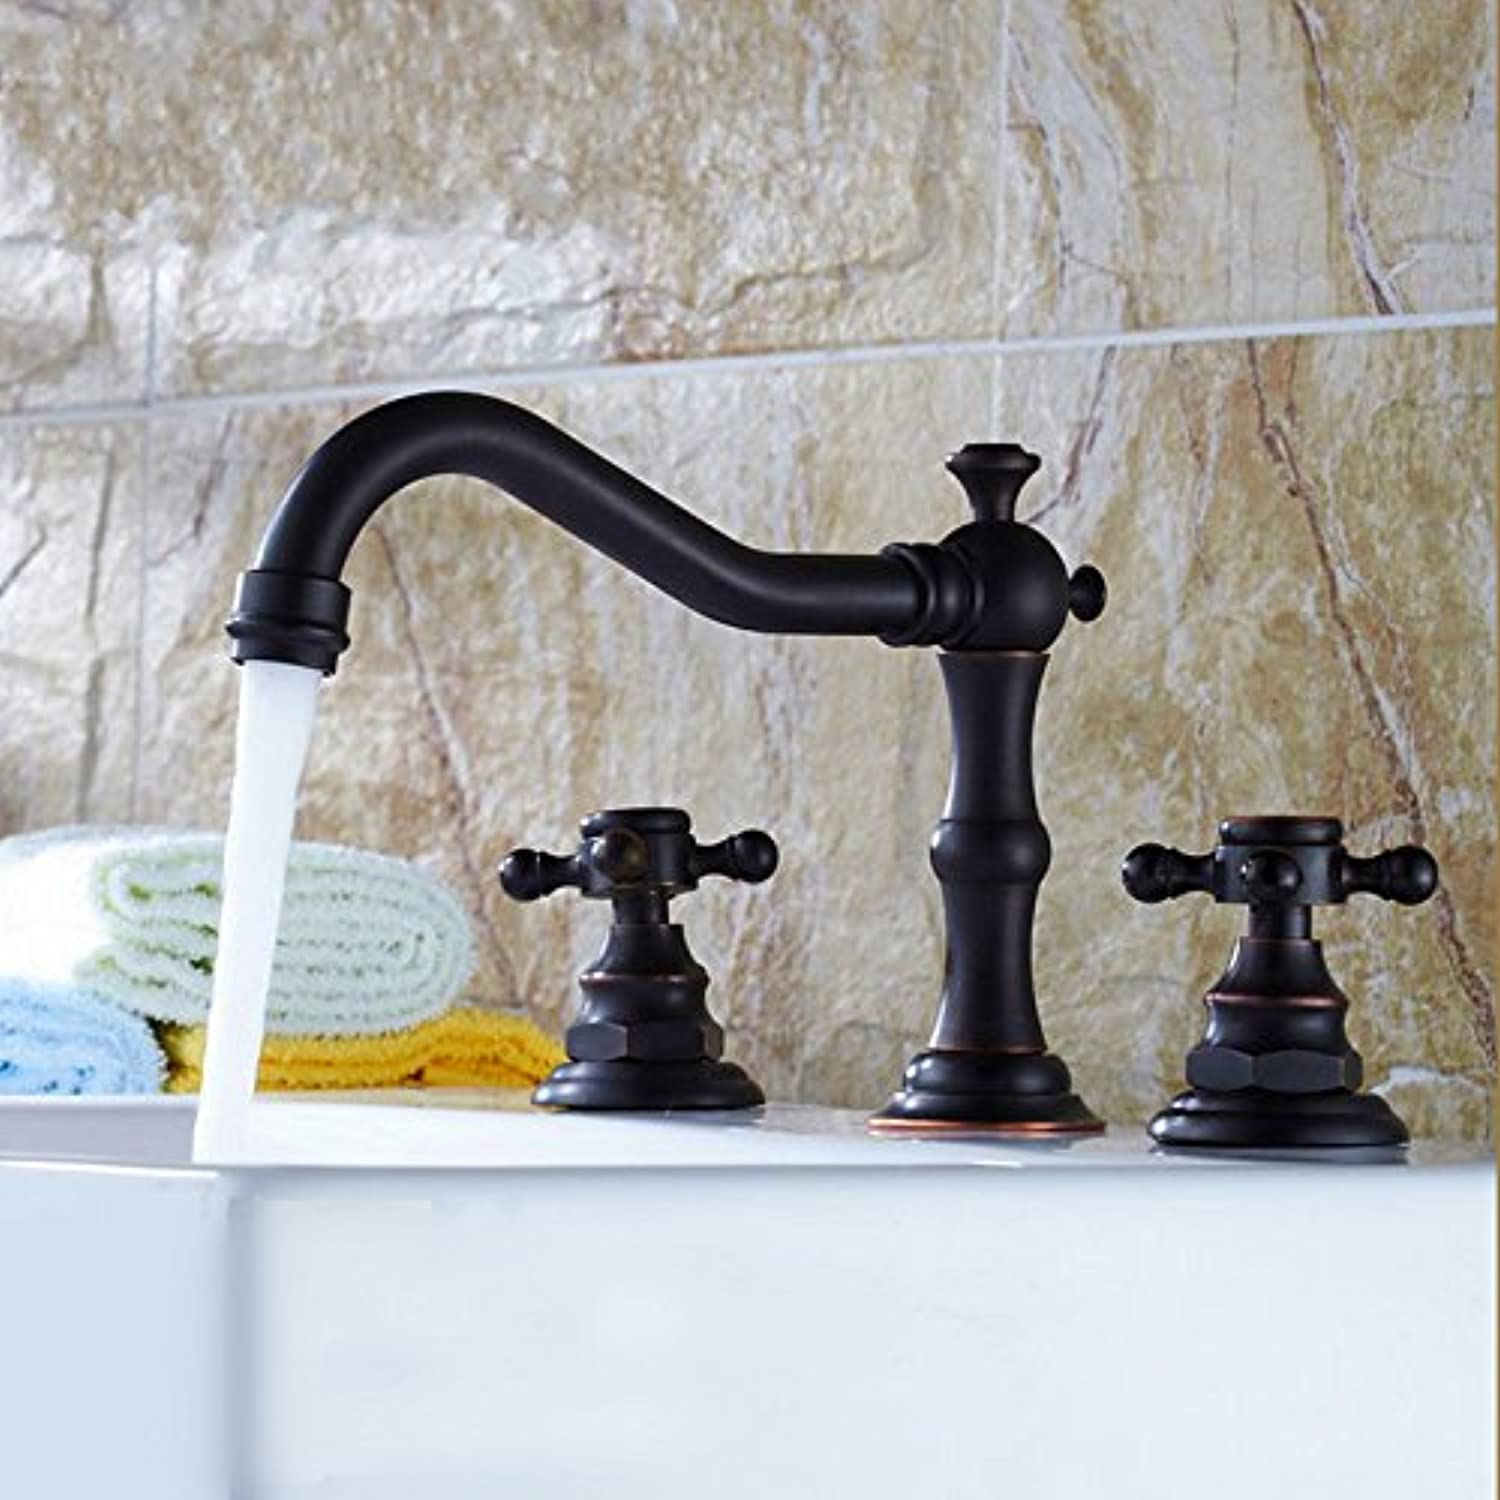 Hillhead Contemporary Brass Bathroom Basin Faucet Mixer Tap Oil Rubbed Bronze Two Handle Hole